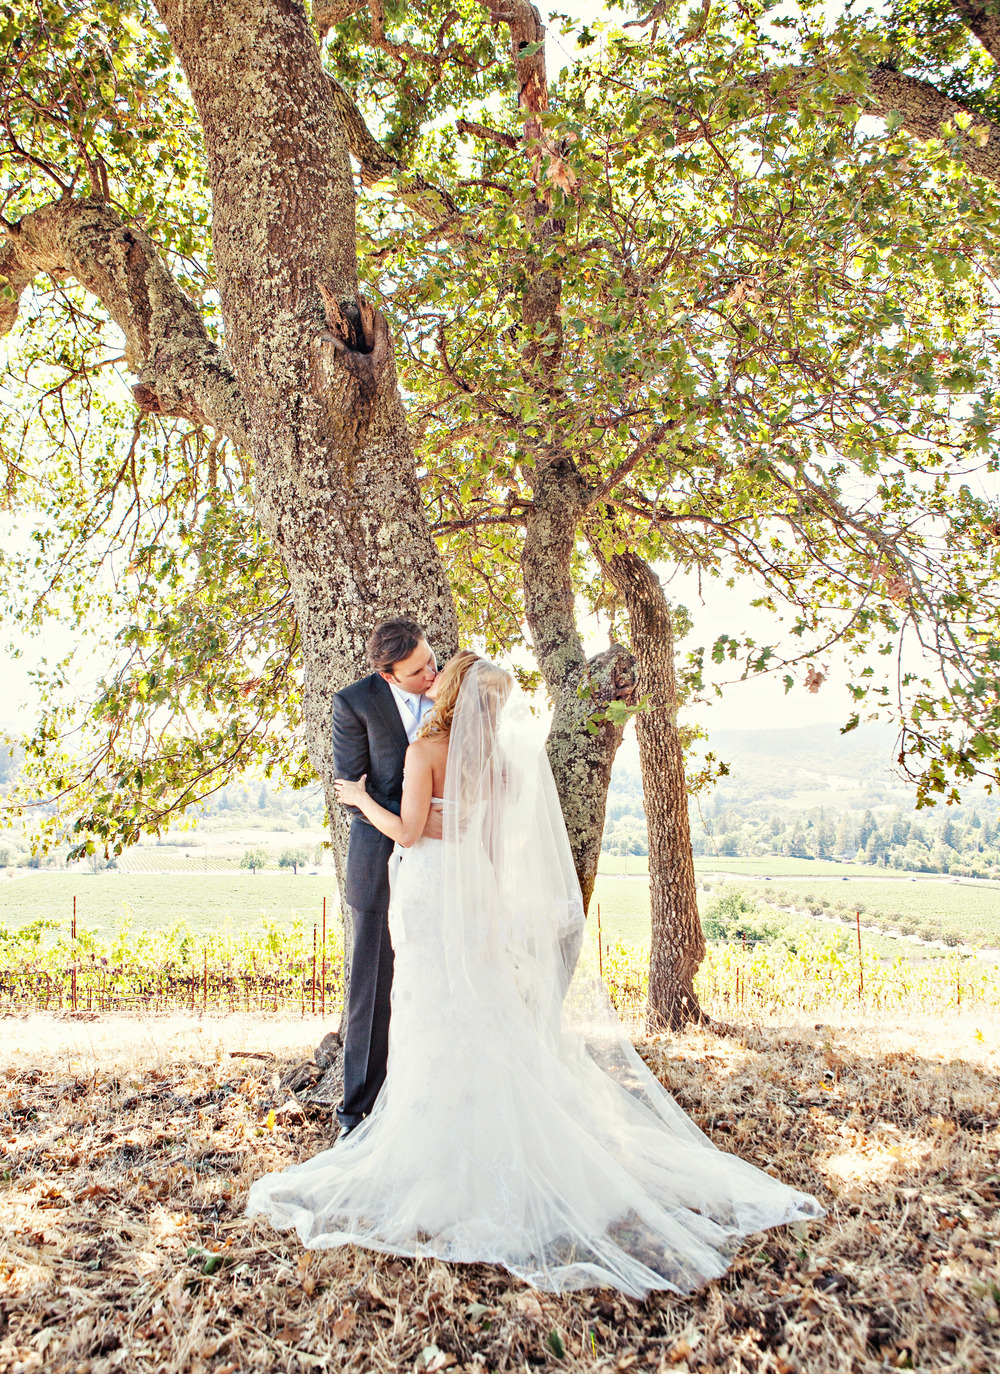 64. RS -napa wedding, vineyard ceremony, bride & groom artsy shot, summer wedding, rustic wedding, .jpg